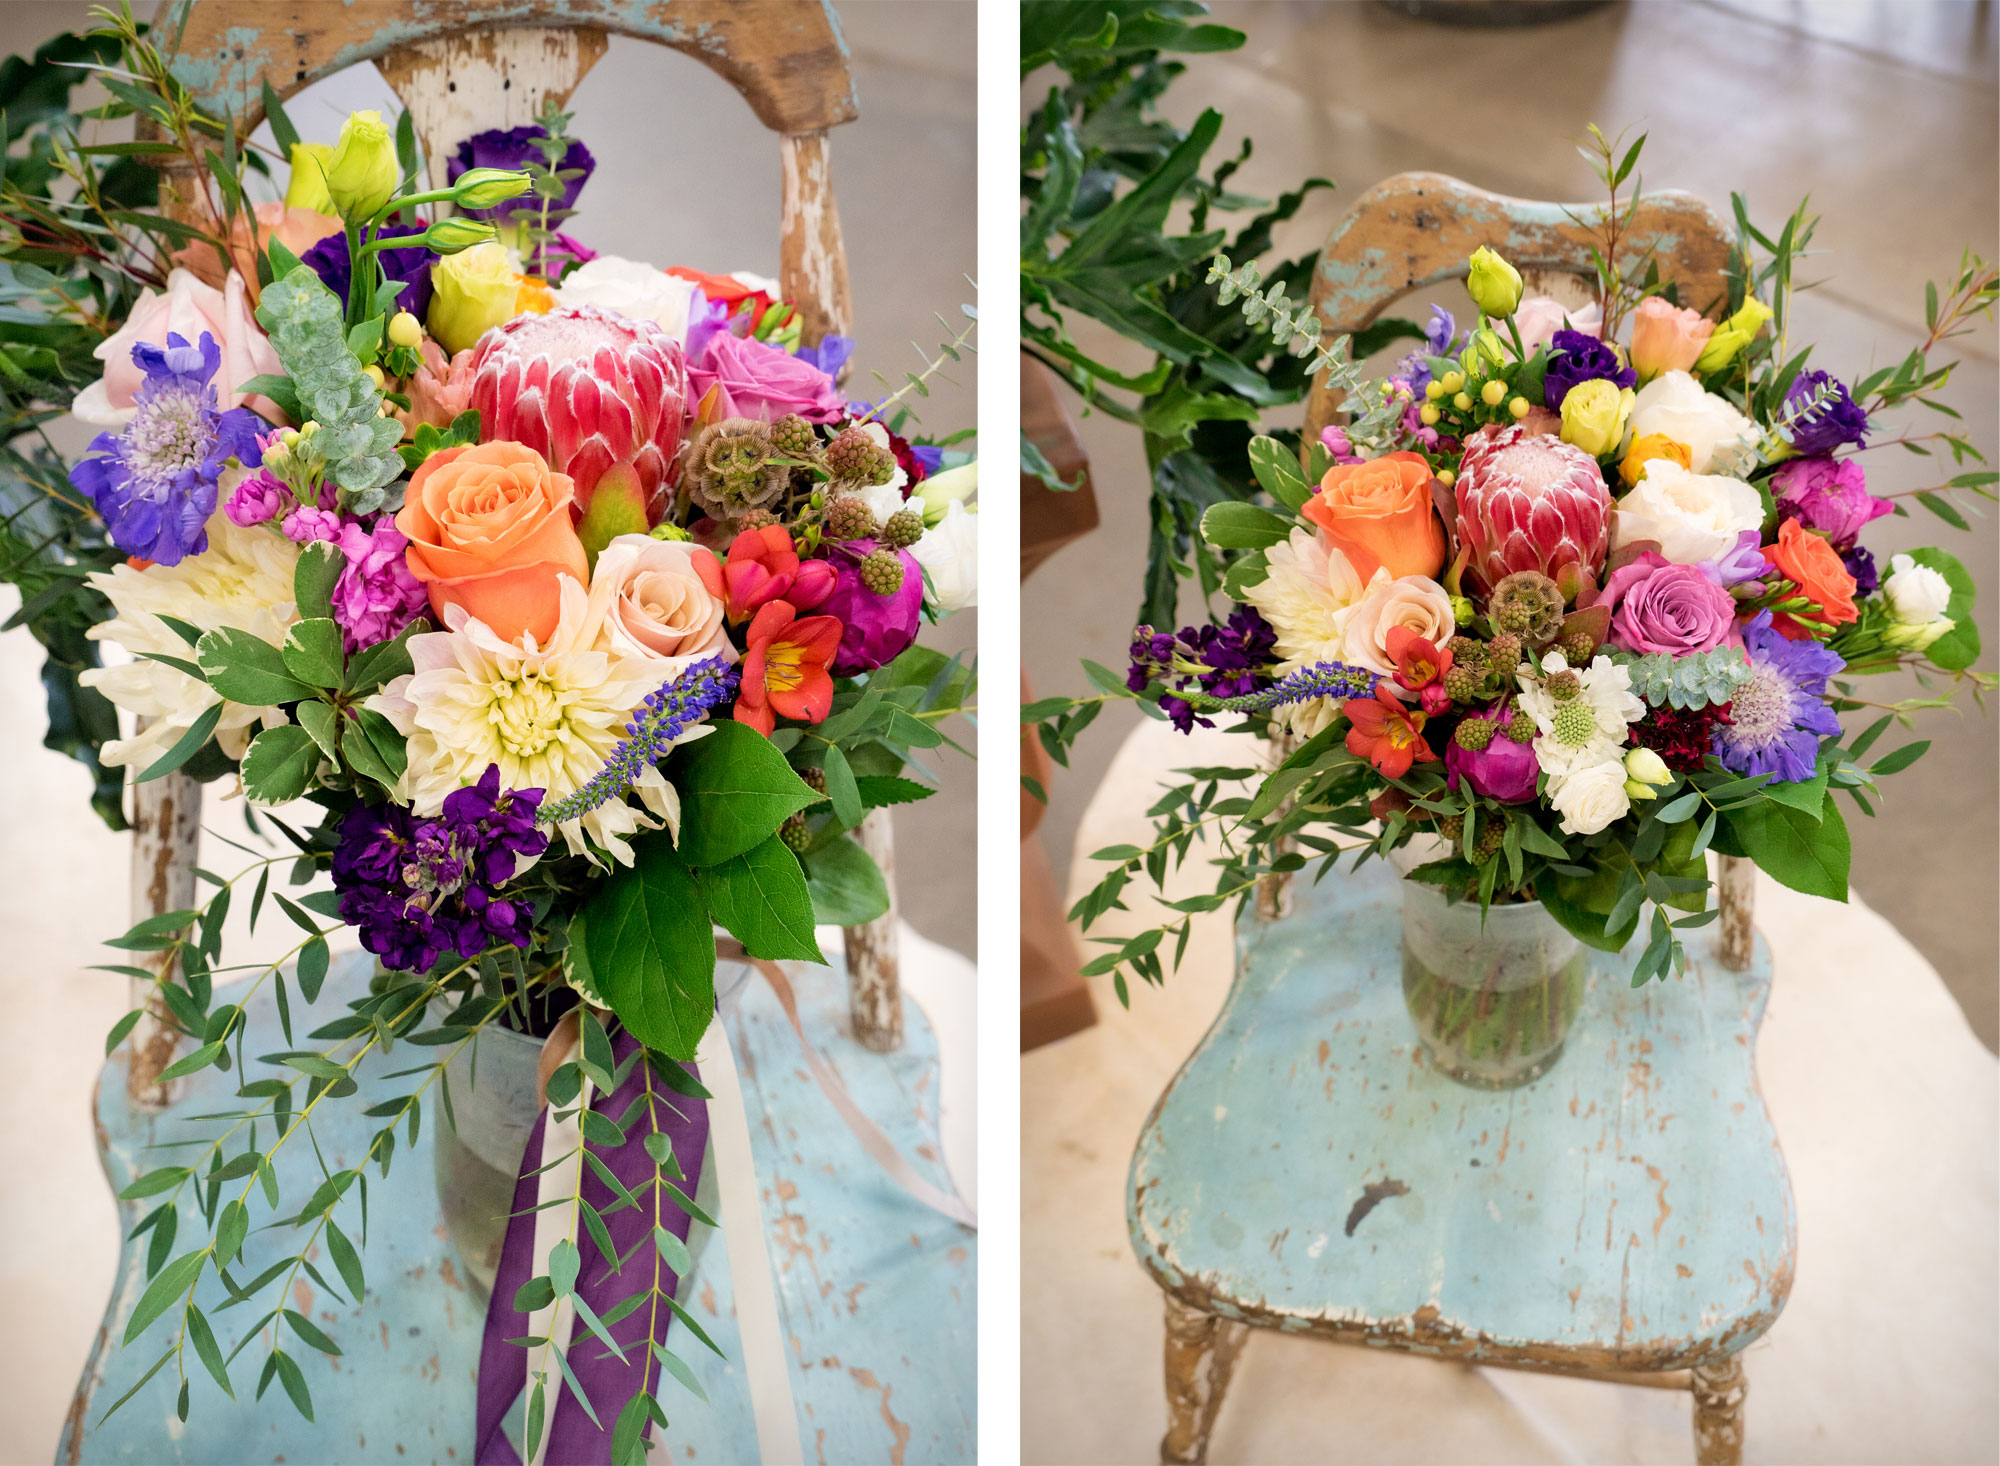 Floral Bouquet & Design by April's Garden at the annual Durango Wedding Expo